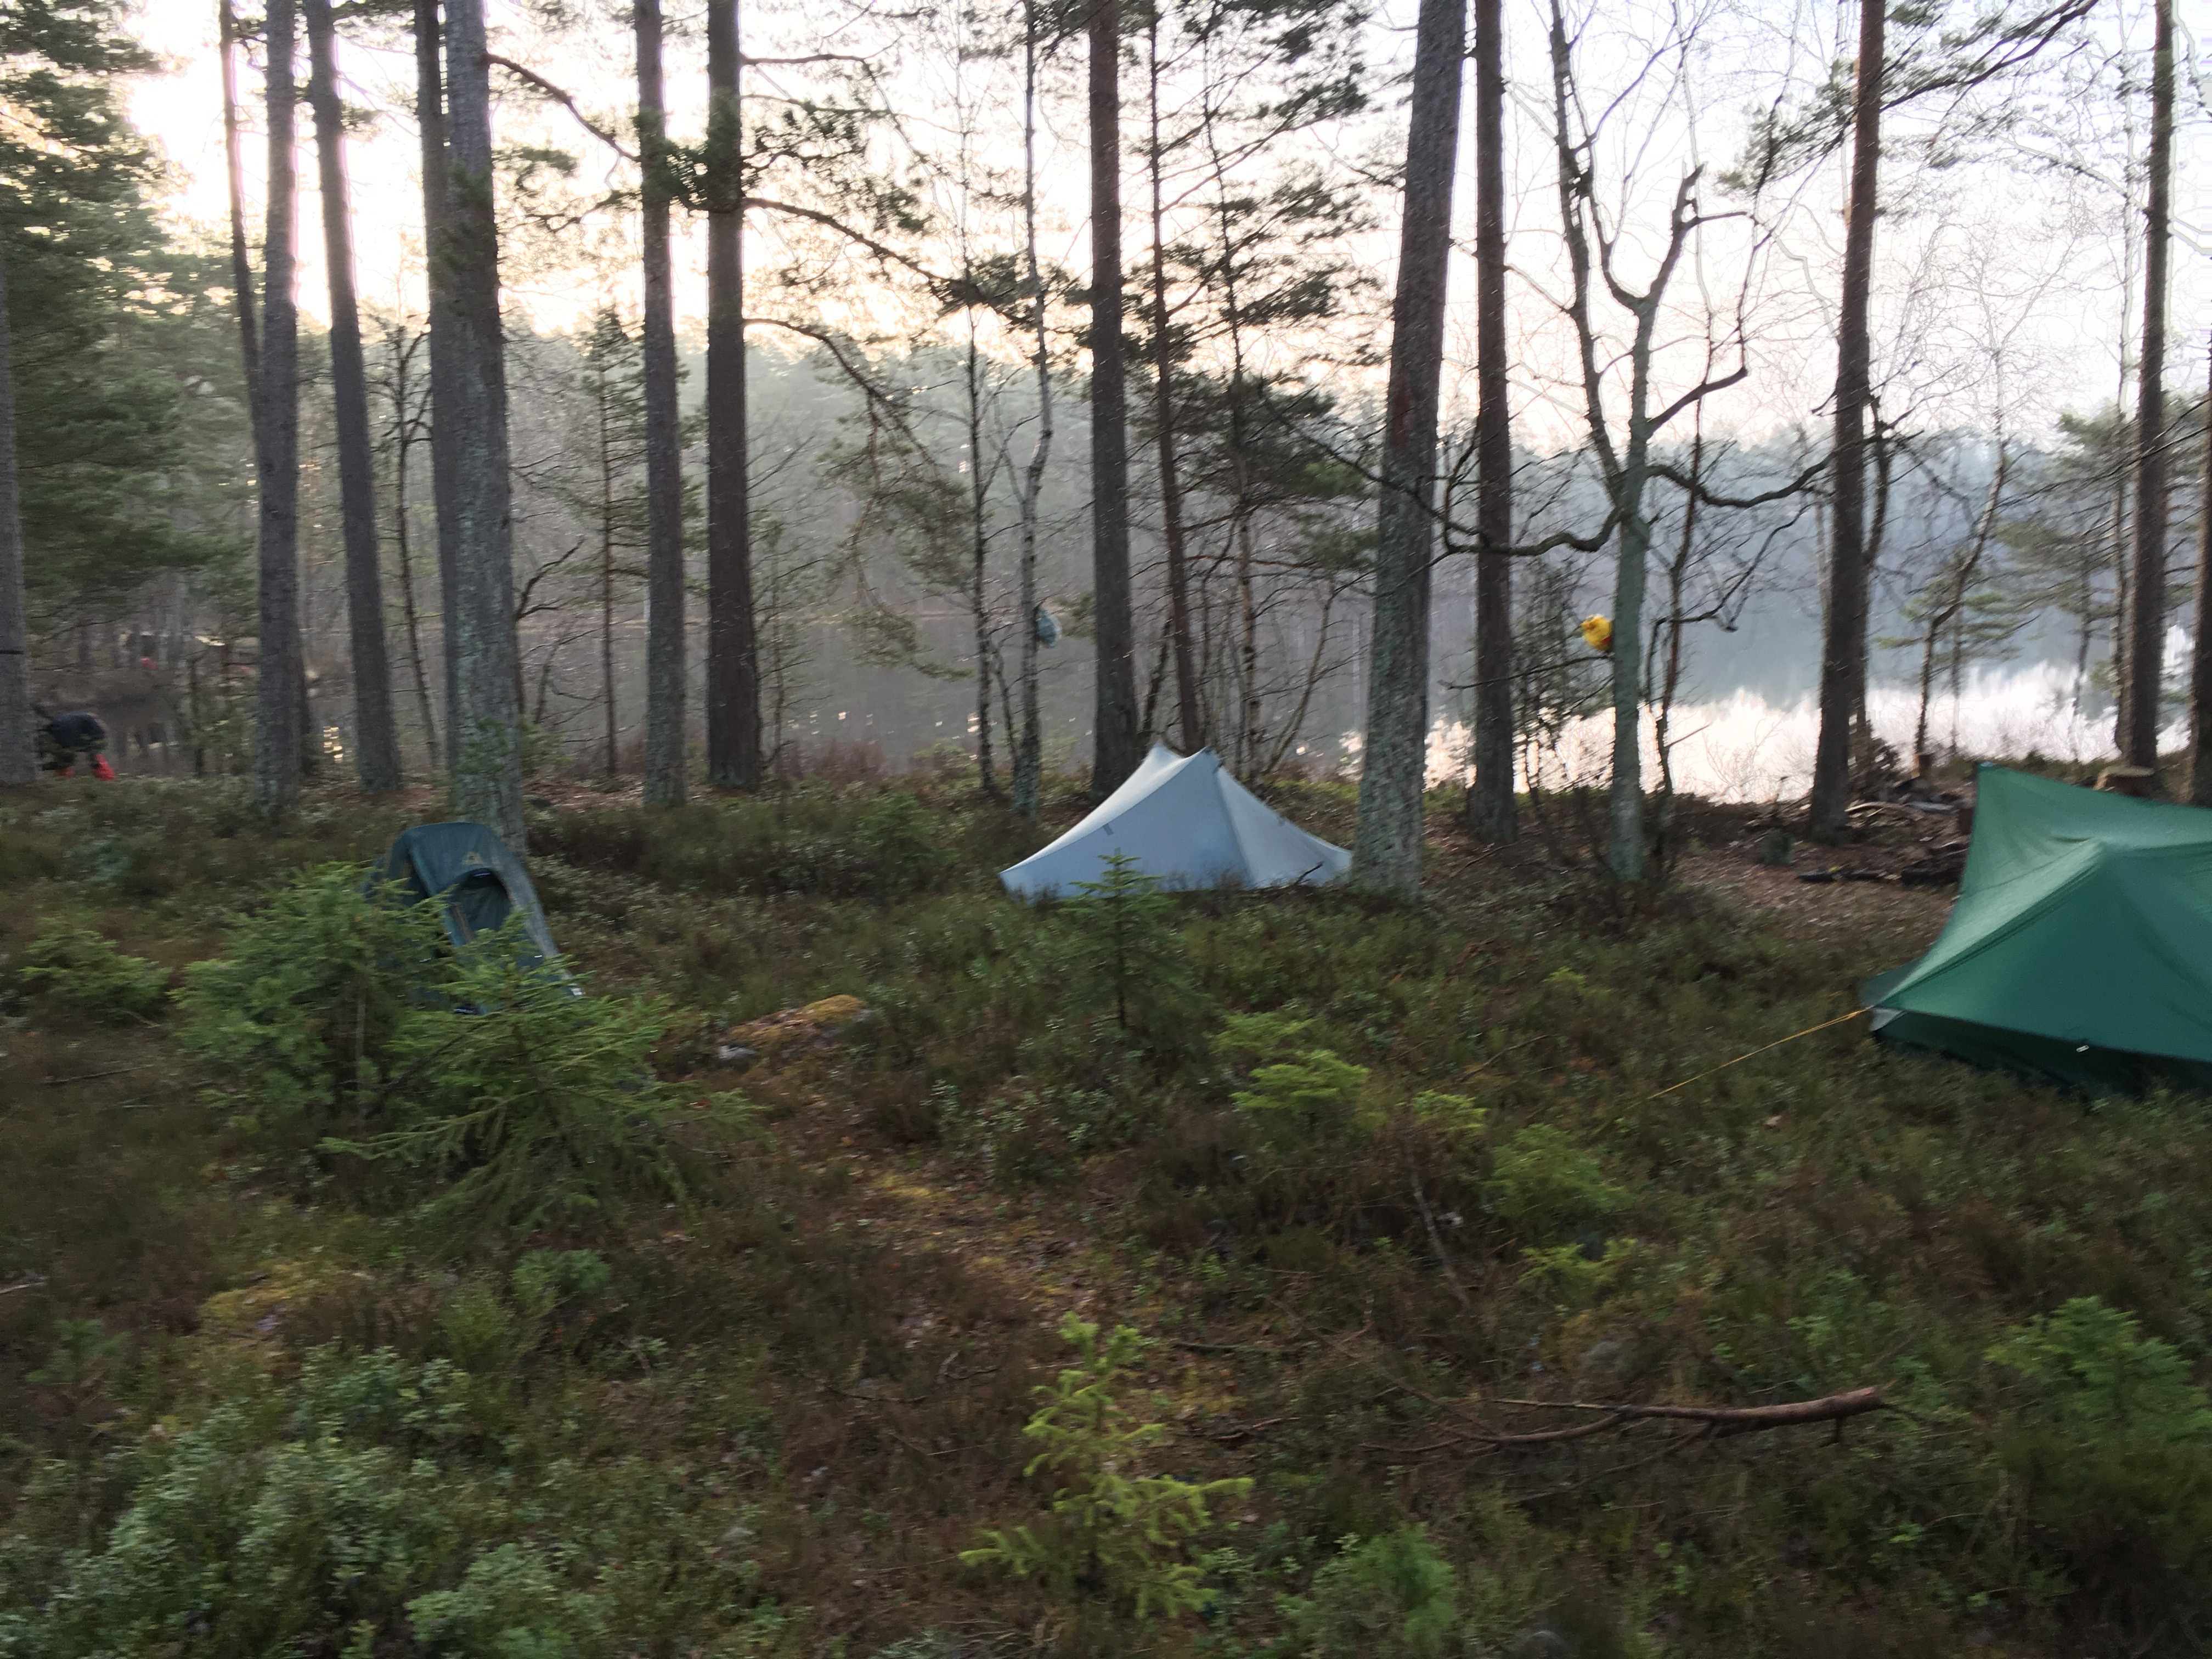 Wilderness trip in the South of Sweden